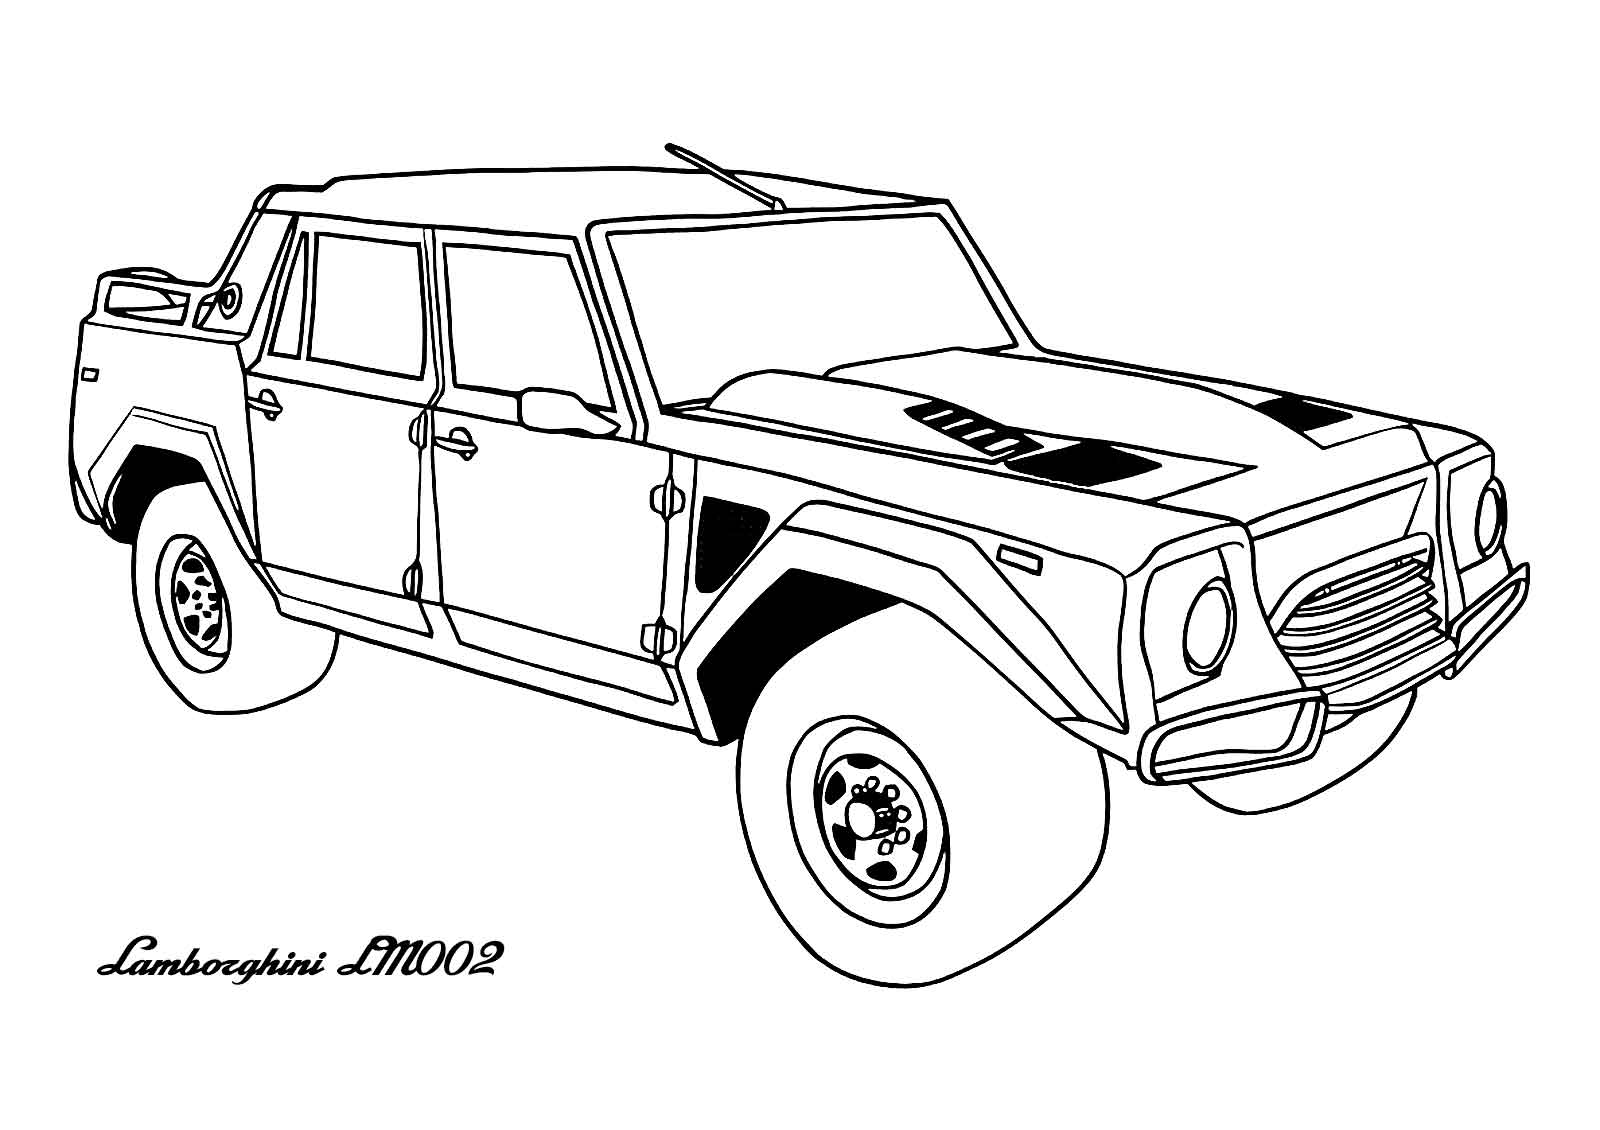 awesome car coloring pages awesome lamborghini lm002 cars coloring page sheet to car pages coloring awesome